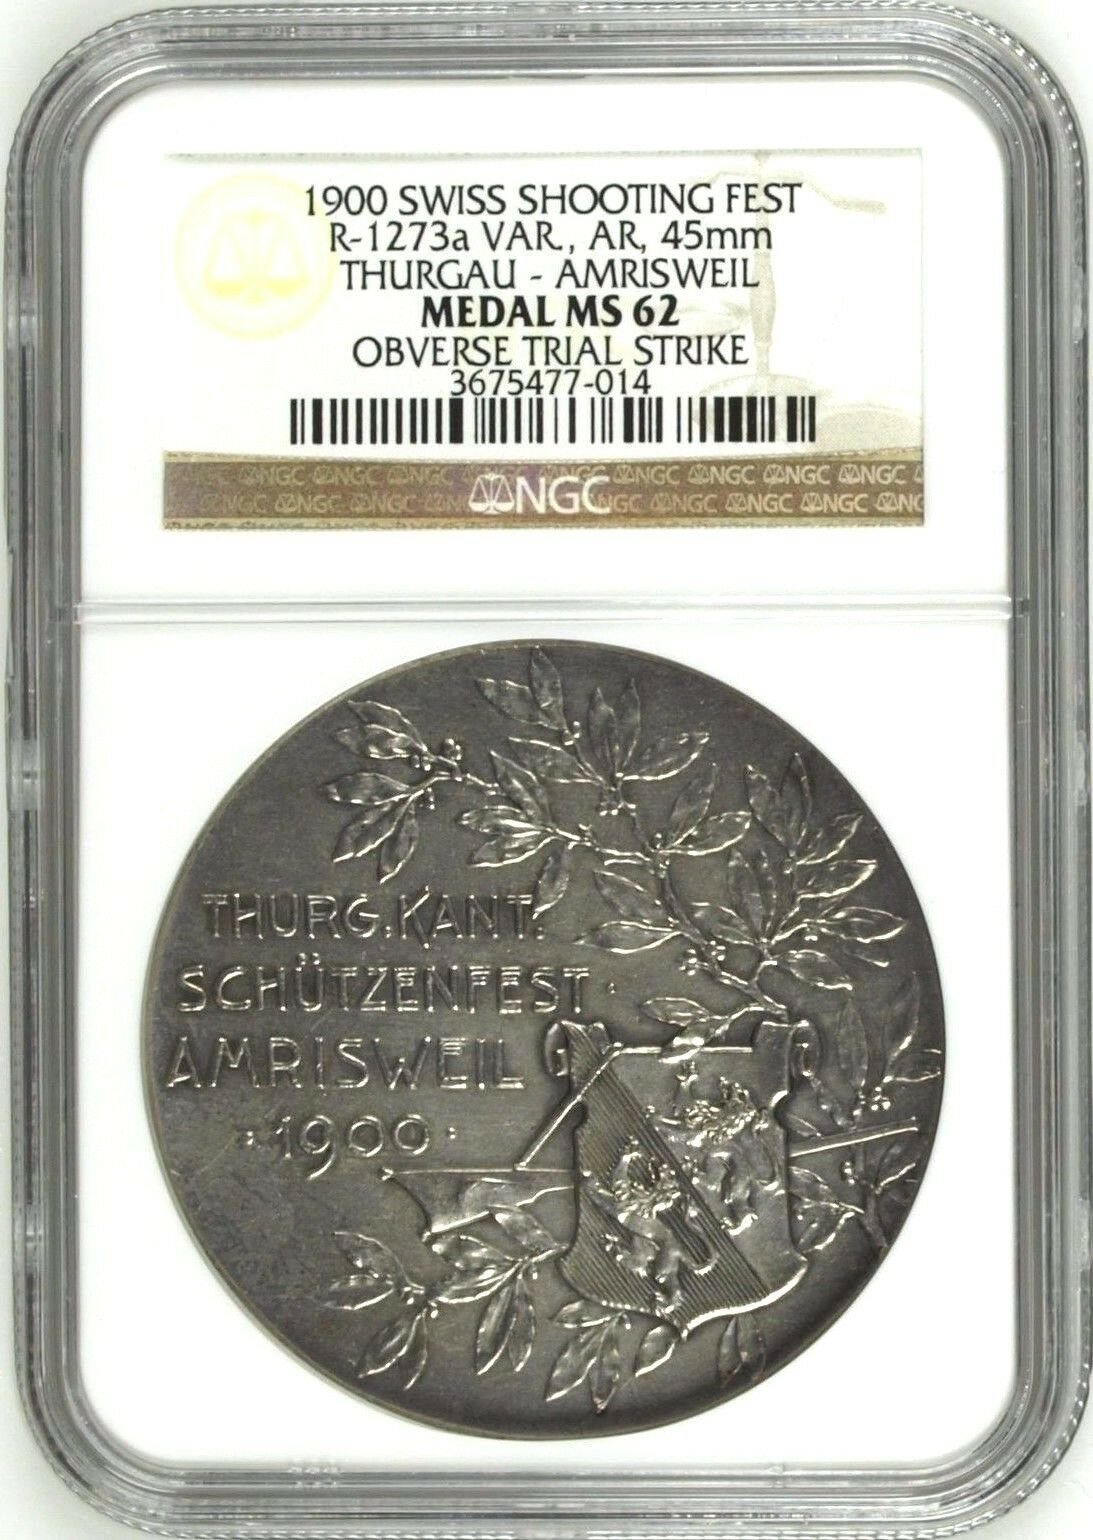 Swiss 1900 Silver Shooting Medal Thurgau Obverse Trial Strike R-1273a NGC MS62